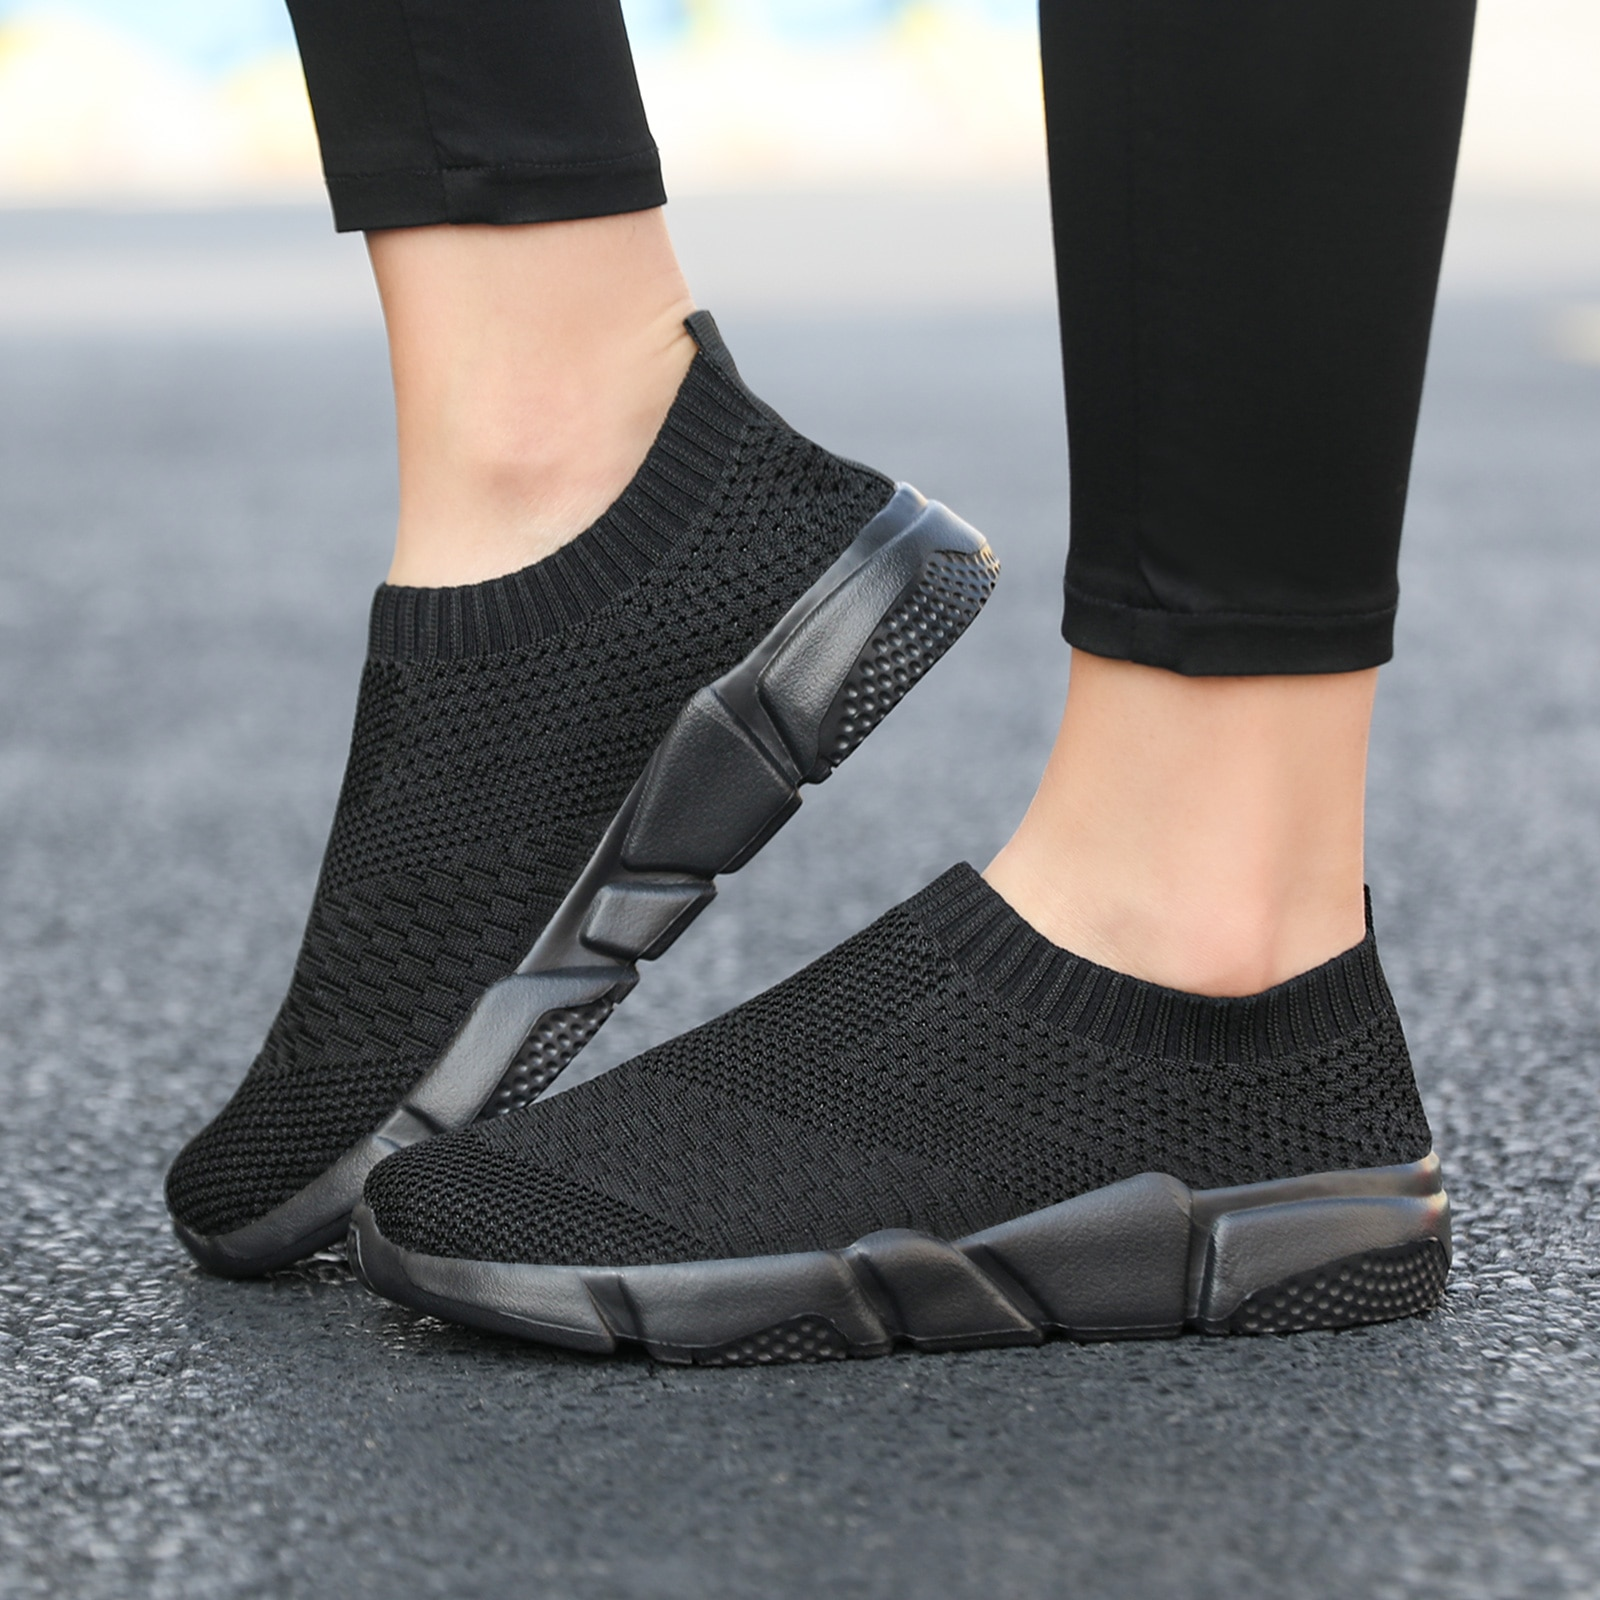 Women Flat Slip on Shoes Woman Light Walking Sock Sneakers Summer Casual Chaussures Femme Tenis Loafers Zapatos De Mujer Zapatos